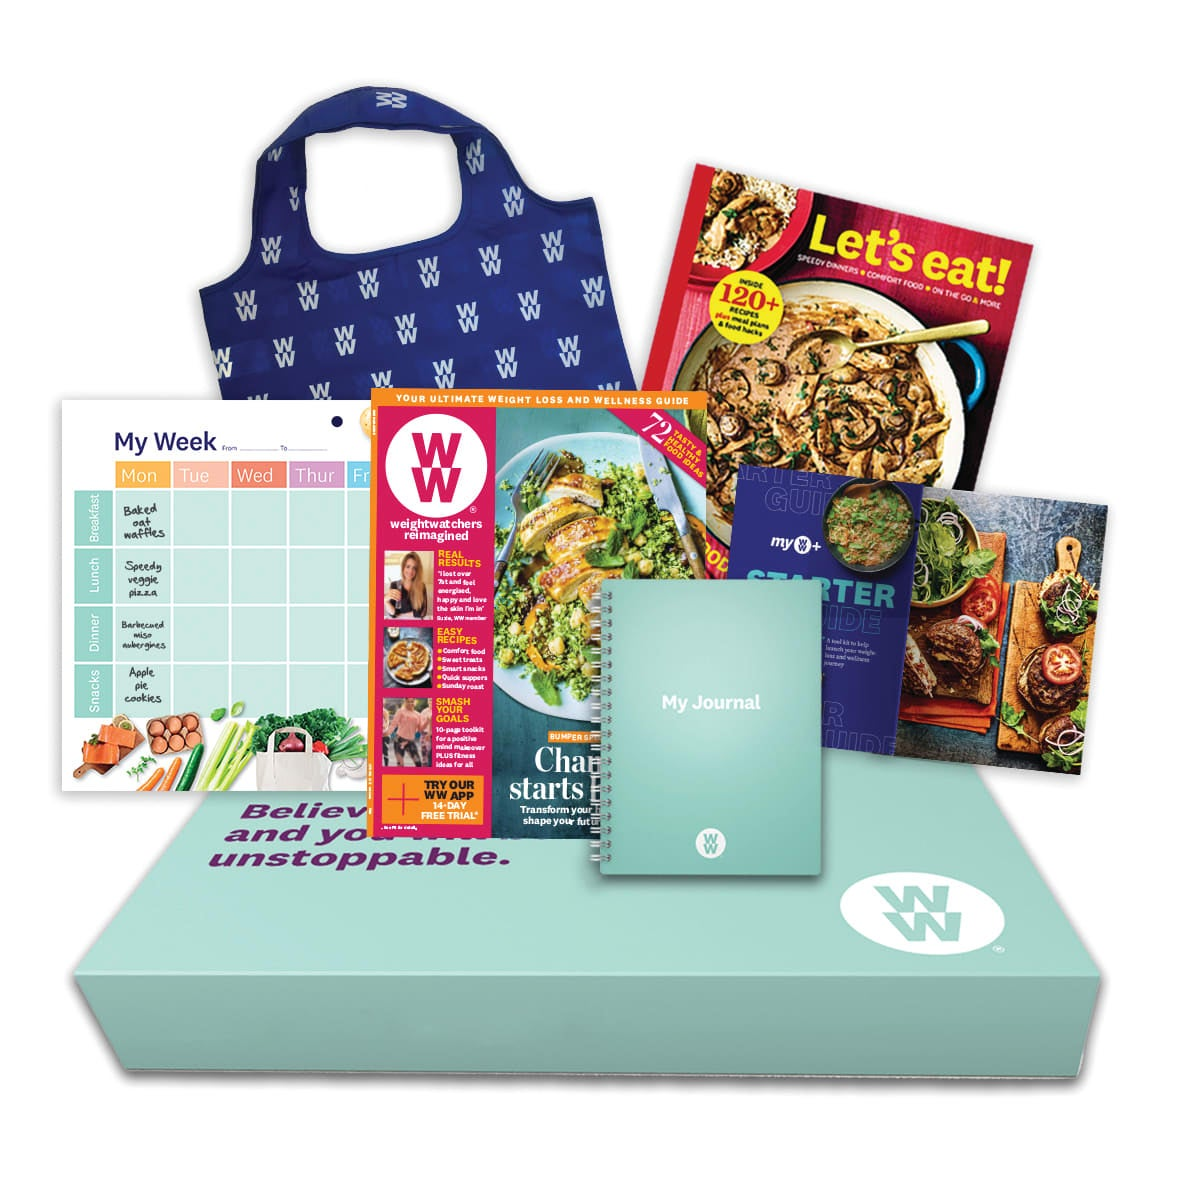 WW 3 Month At Home Kit, Includes 3 month Digital subscription, WW starter guide, Let's Eat! Cookbook, Meal Planner, food and activity Journal, Tote Bag